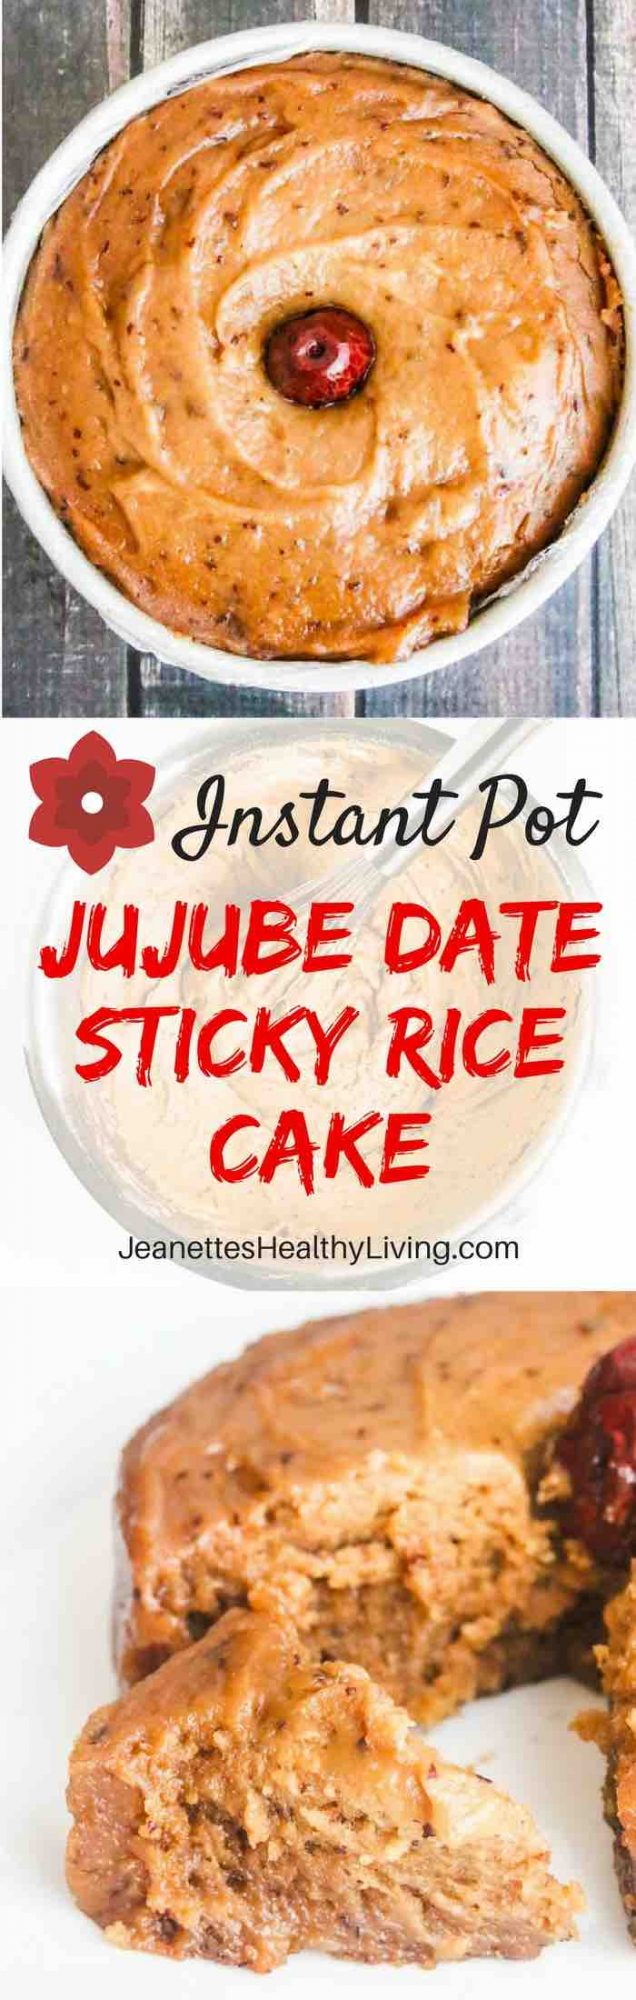 Jujube Date Sticky Rice Cake - traditional Chinese New Year sticky rice cake made with jujube date jam